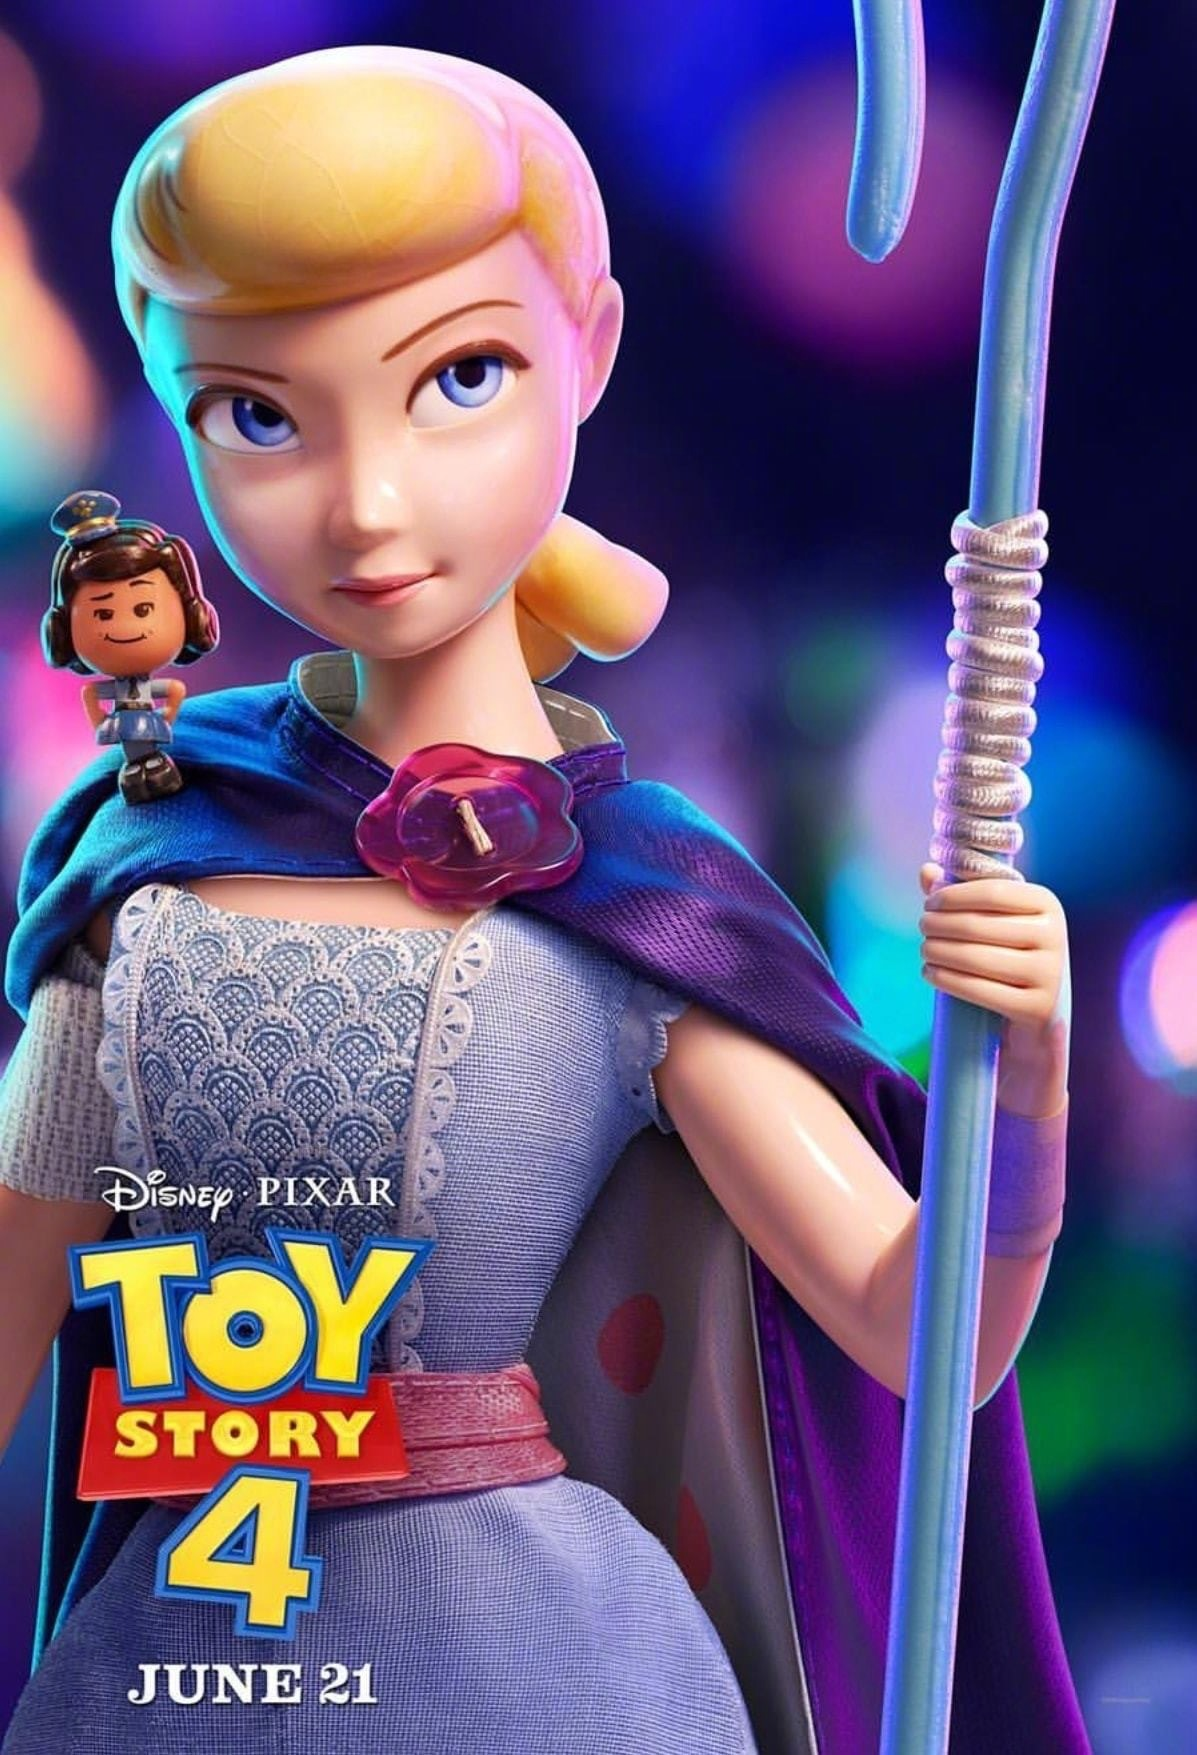 Bo Peep Toy Story 4 Character Posters